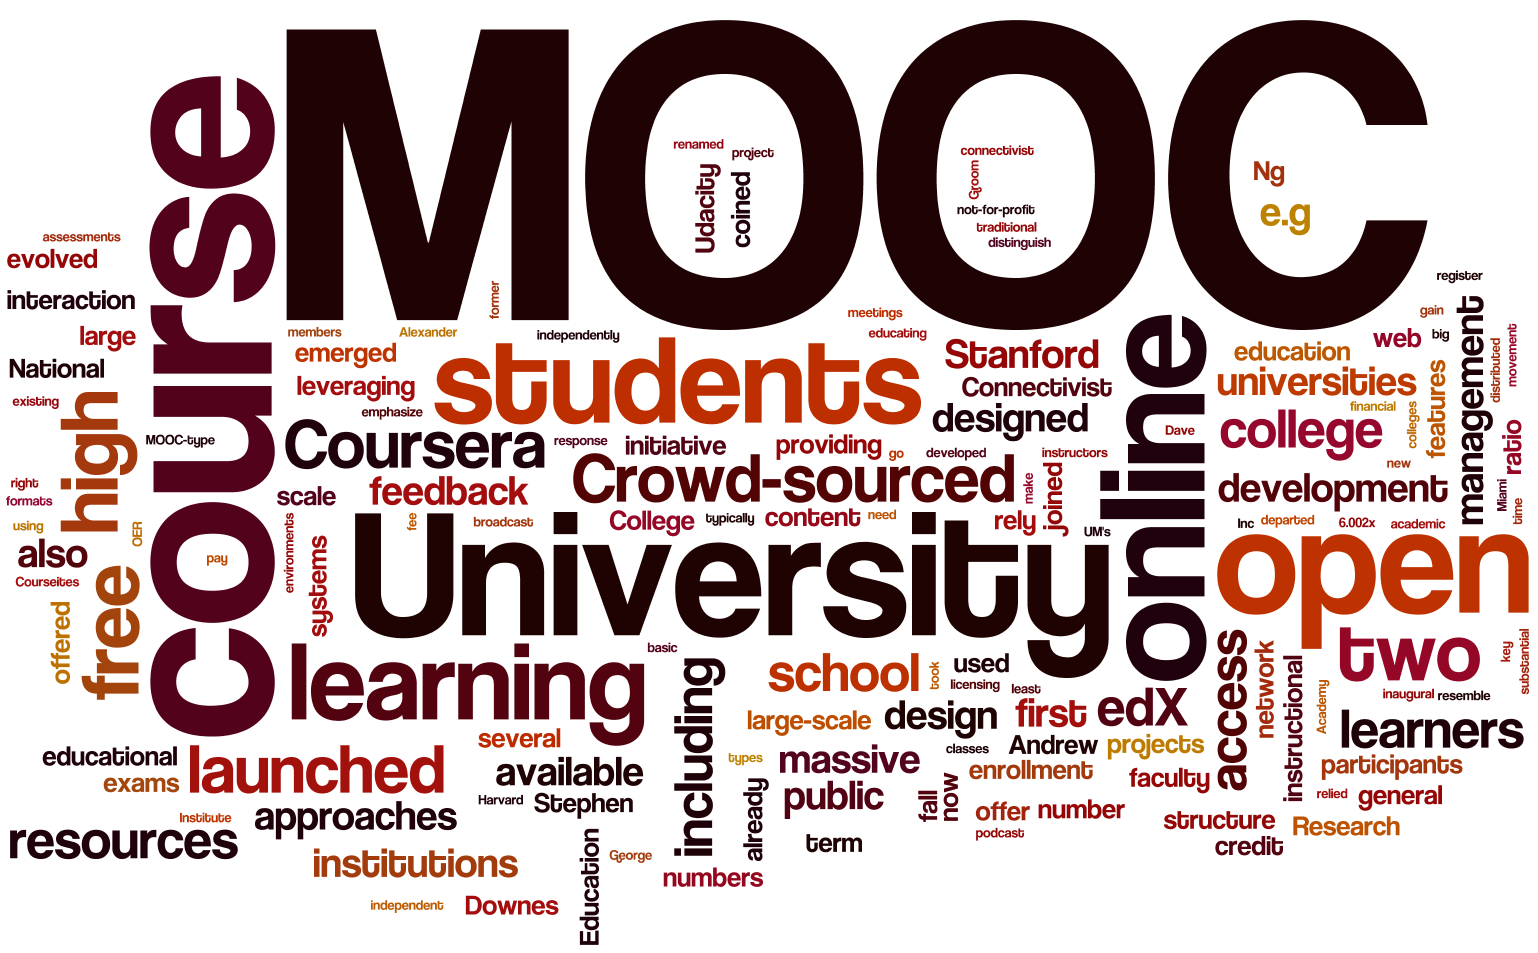 What are MOOCs? 6